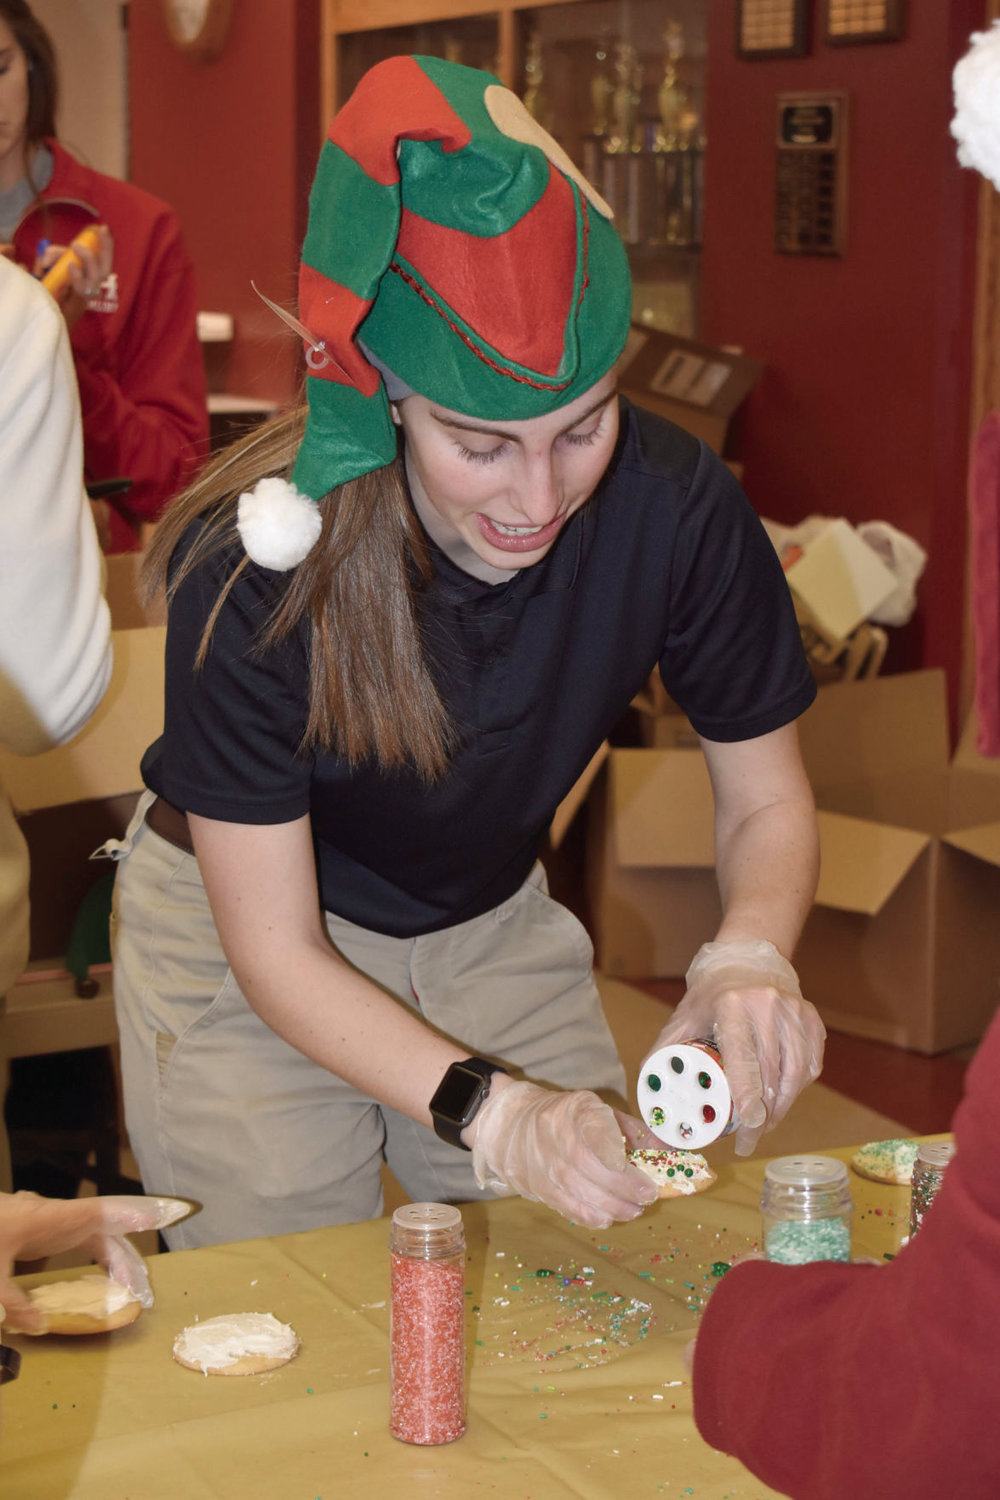 Blaise Wilt decorates Christmas cookies for the stockings.